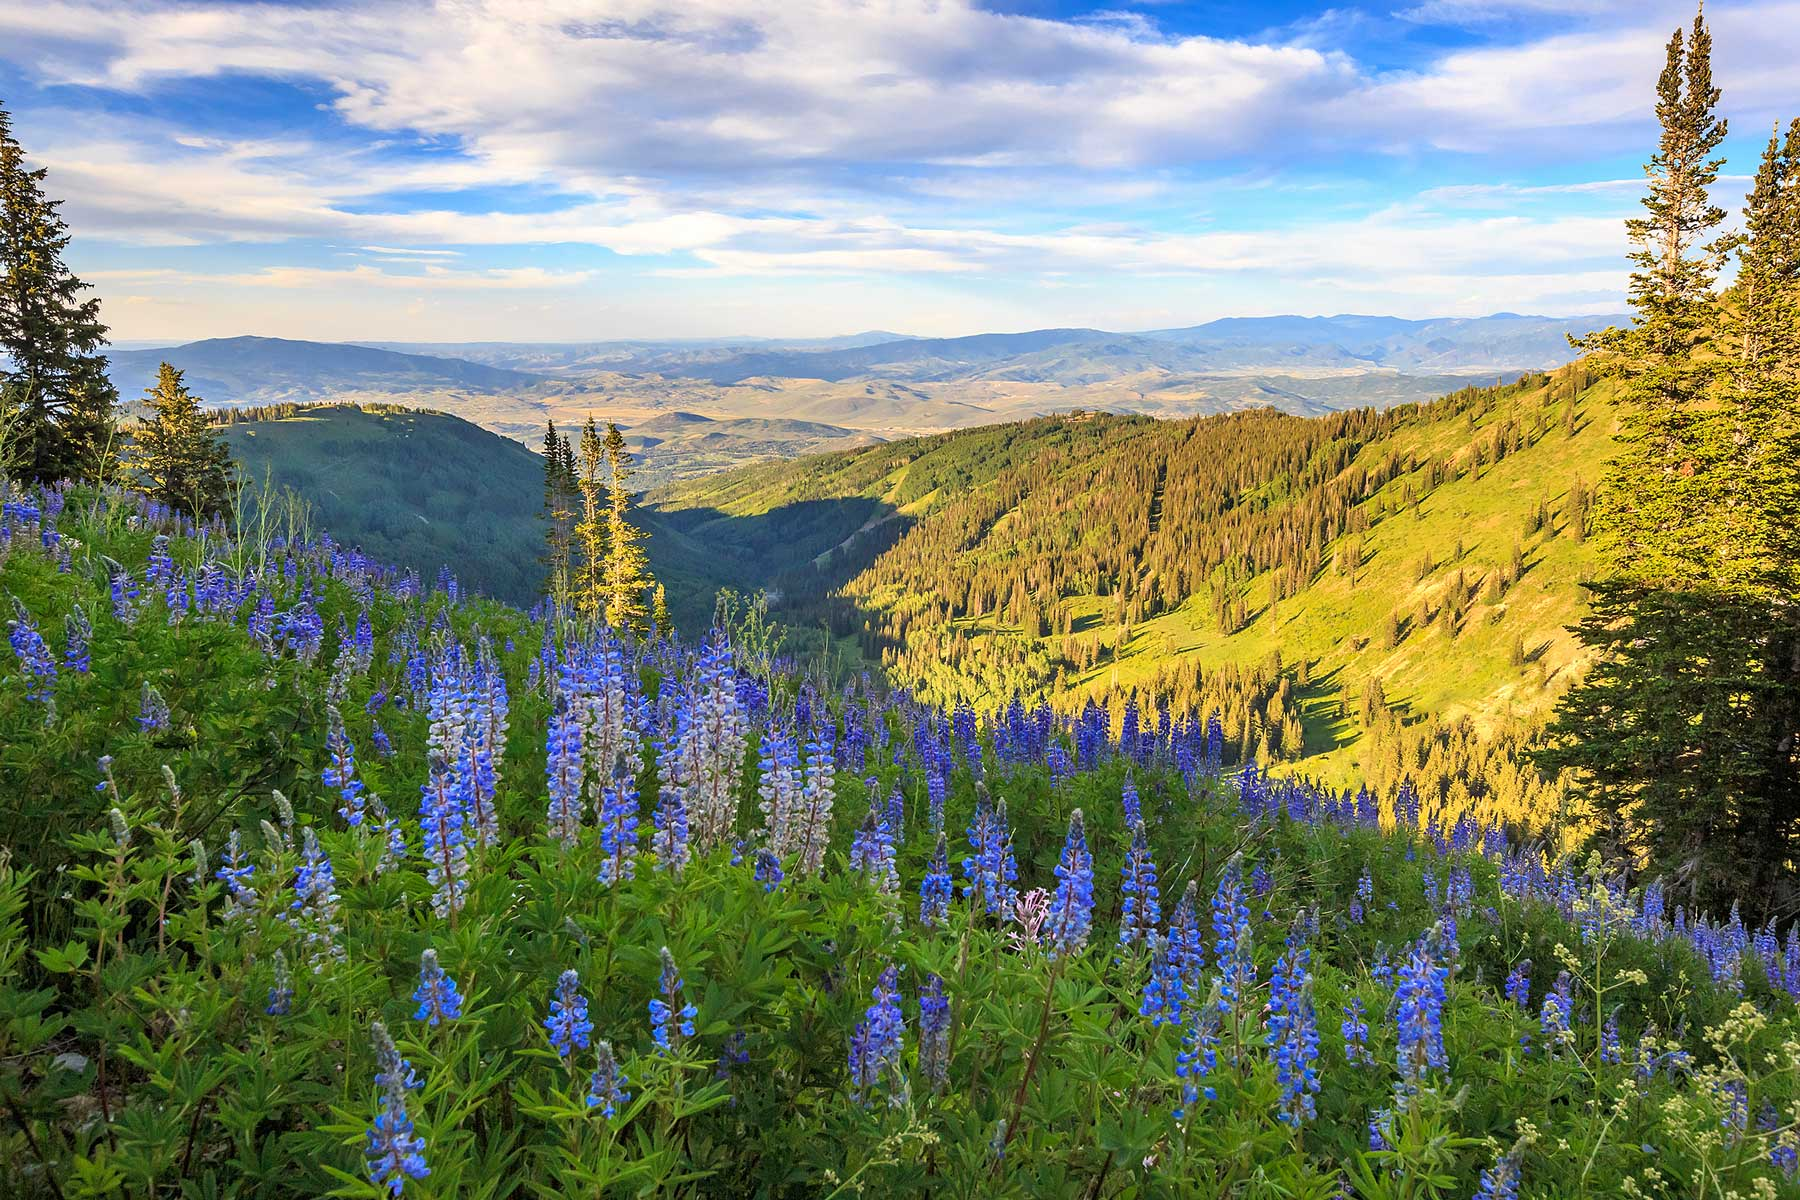 Blue lupine wildflowers above the ski runs in Park City, Utah